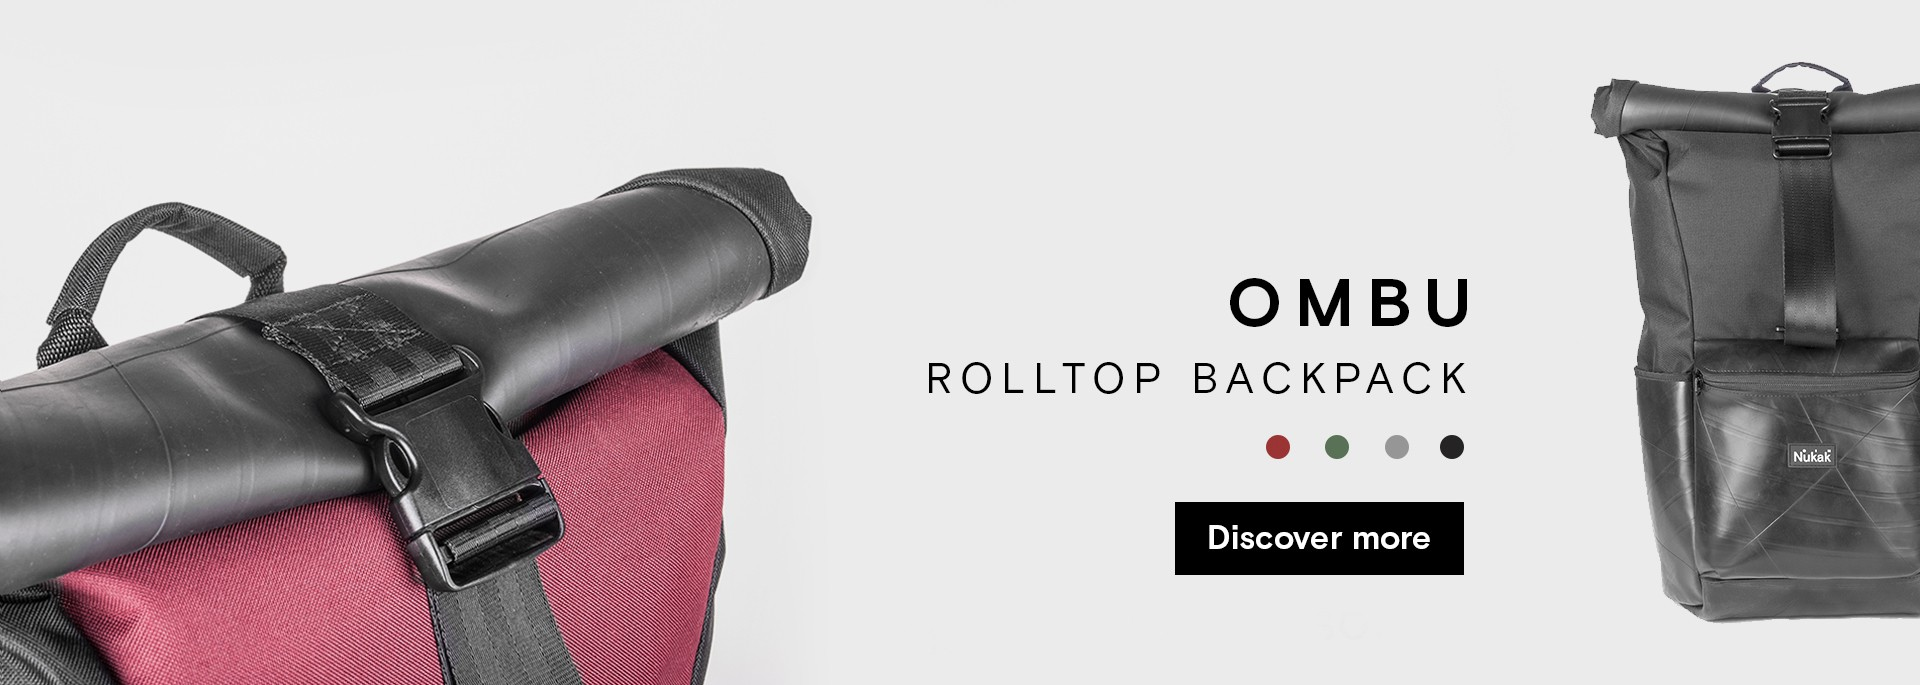 Ombu, new rolltop backpack